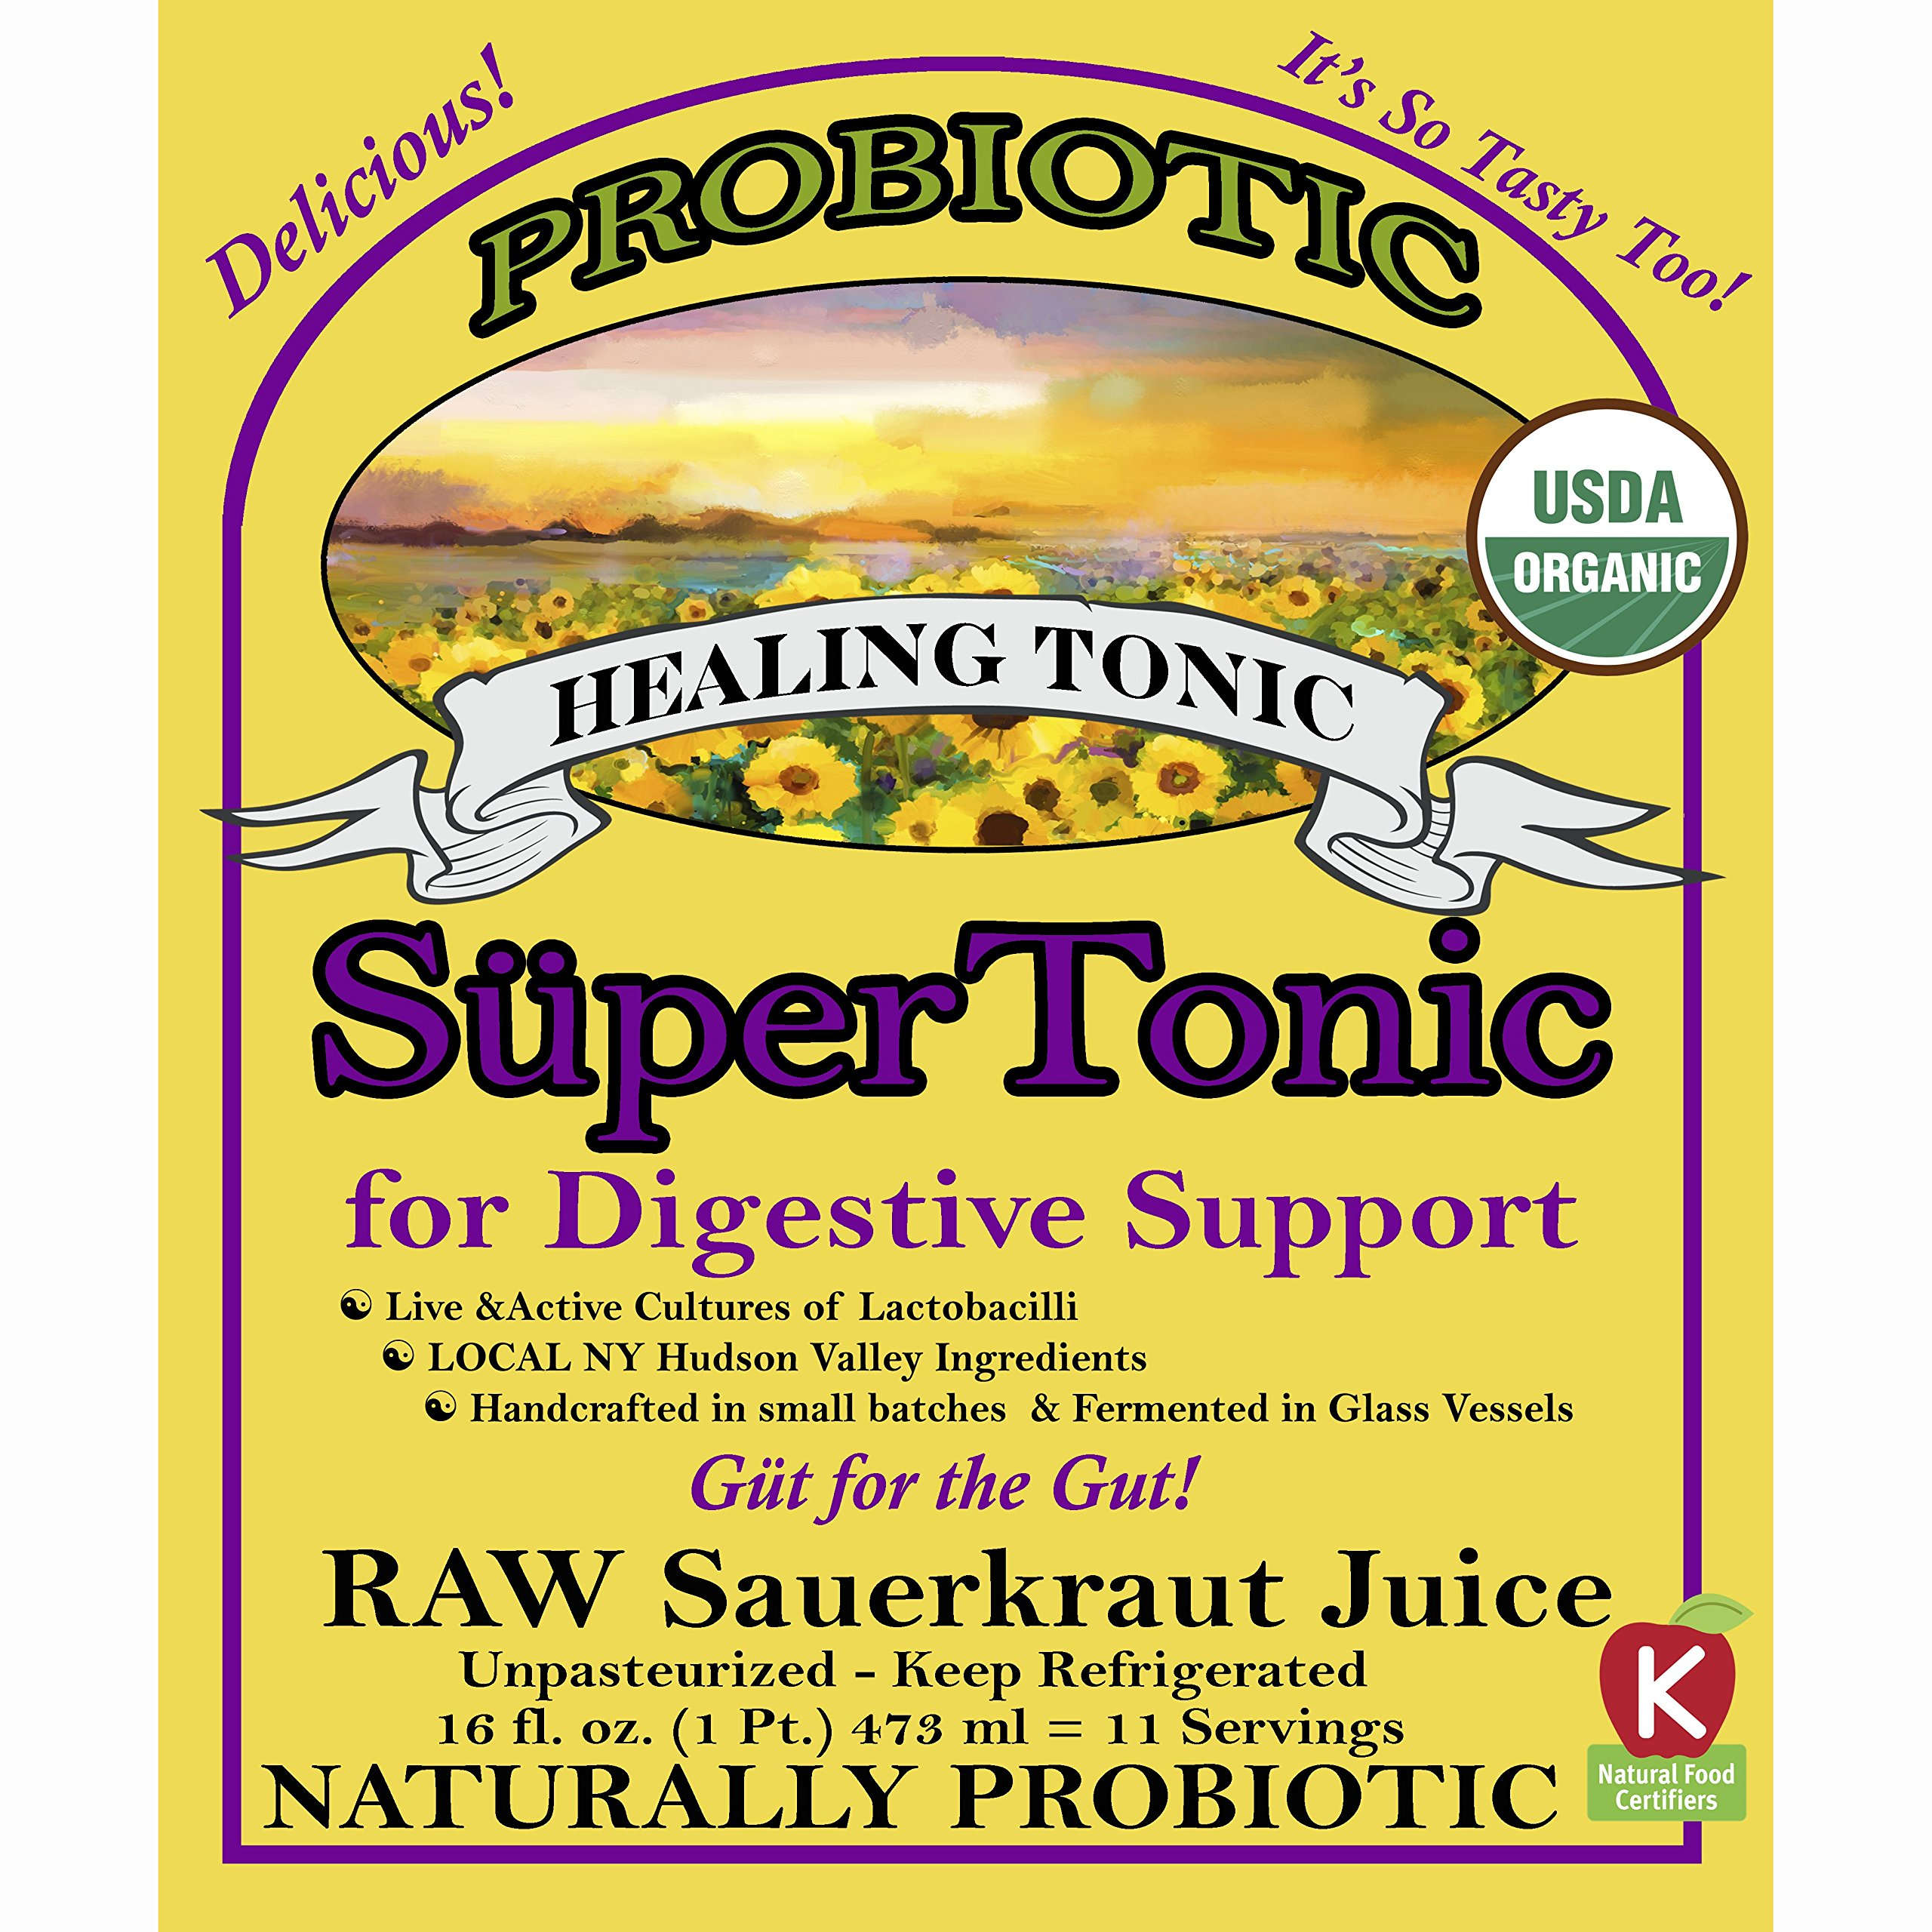 """Healing"" SuperTonic for digestive support: organic, probiotic. 11 servings/bottle. No shipping charges with minimum. Pure juice of raw fermented sauerkraut, unpasteurized, kosher, vegan, gluten free. by Superkrauts"